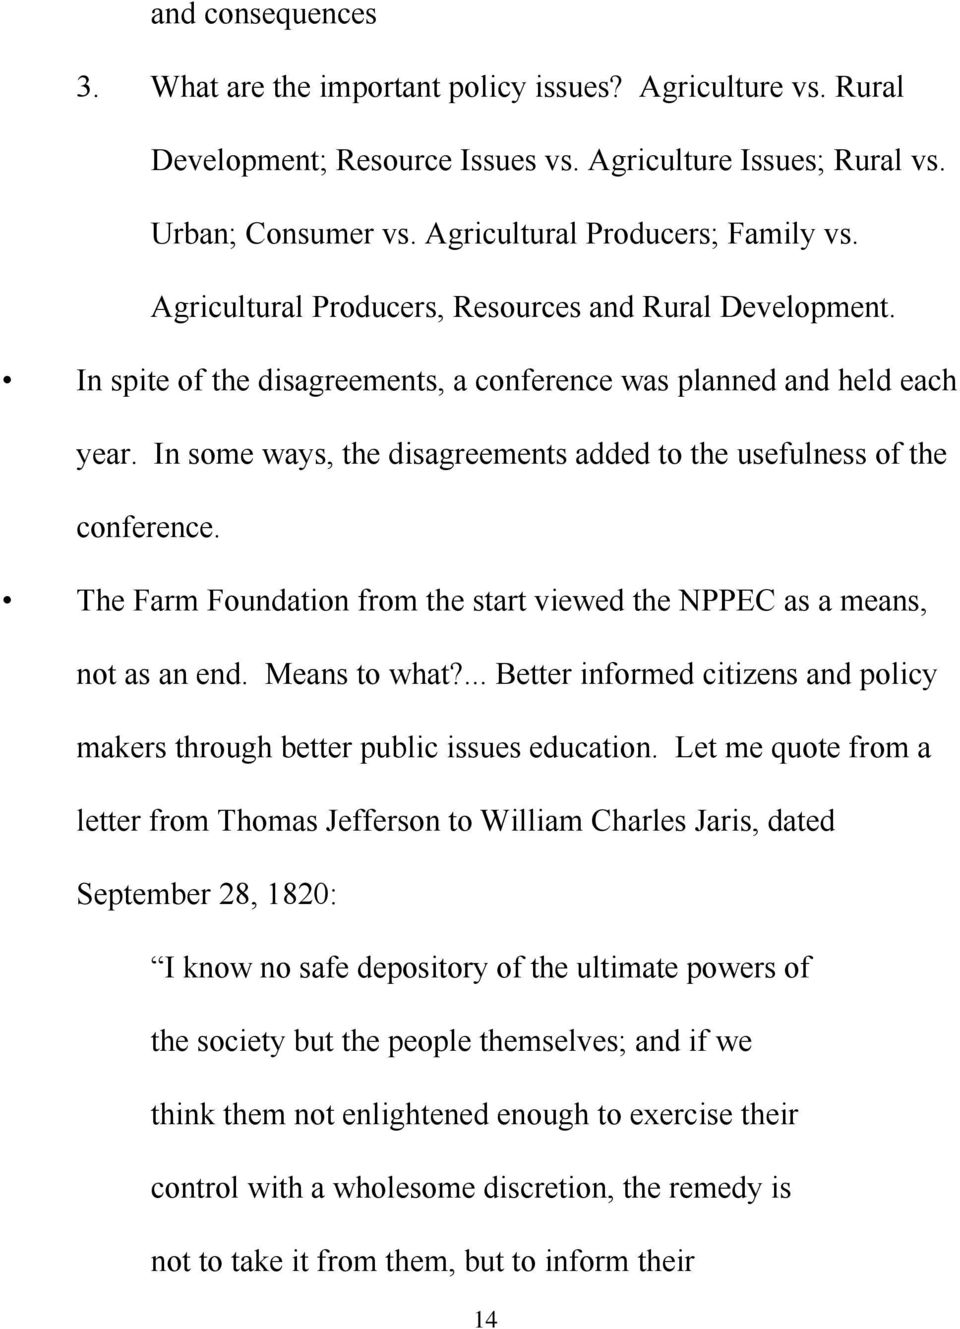 In some ways, the disagreements added to the usefulness of the conference. The Farm Foundation from the start viewed the NPPEC as a means, not as an end. Means to what?